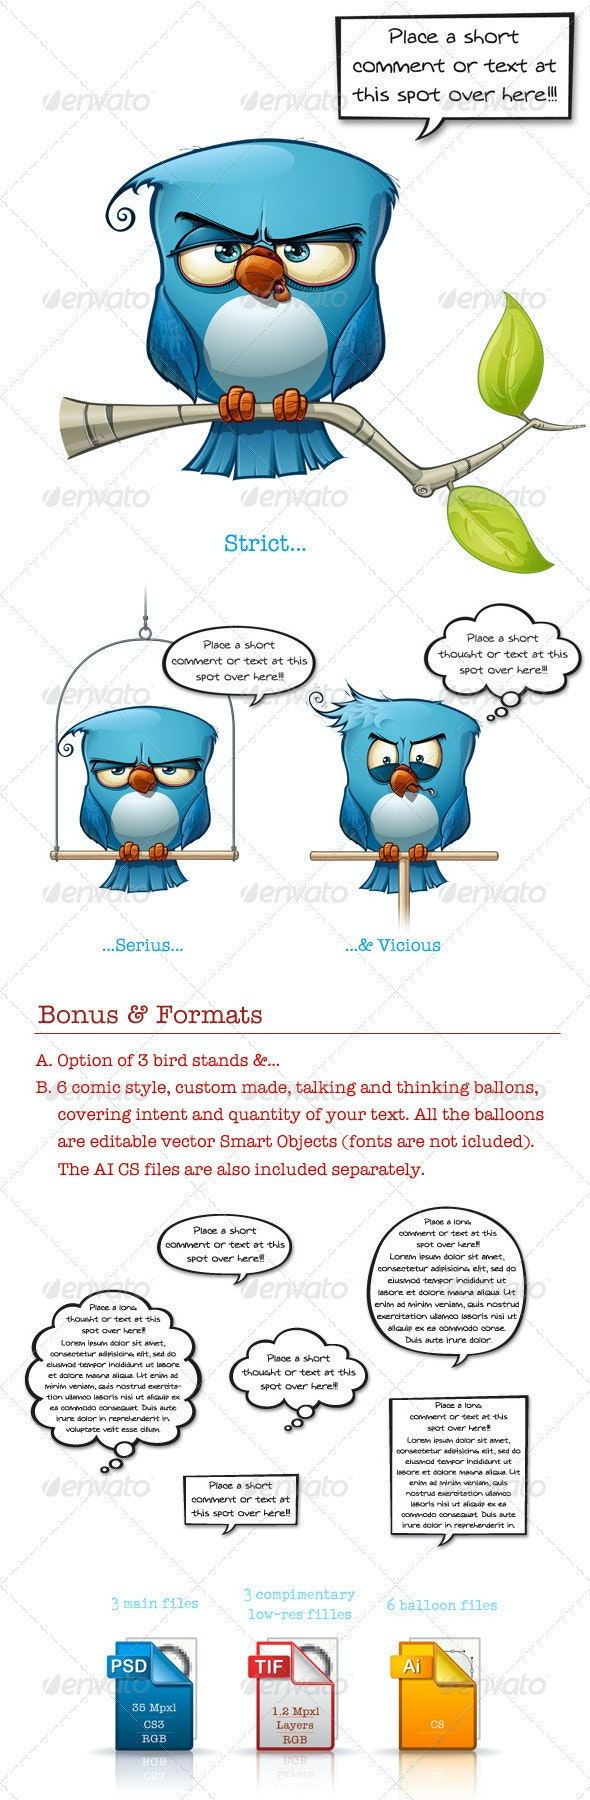 Blue Bird Strict-Serius-Vicious - Characters Illustrations